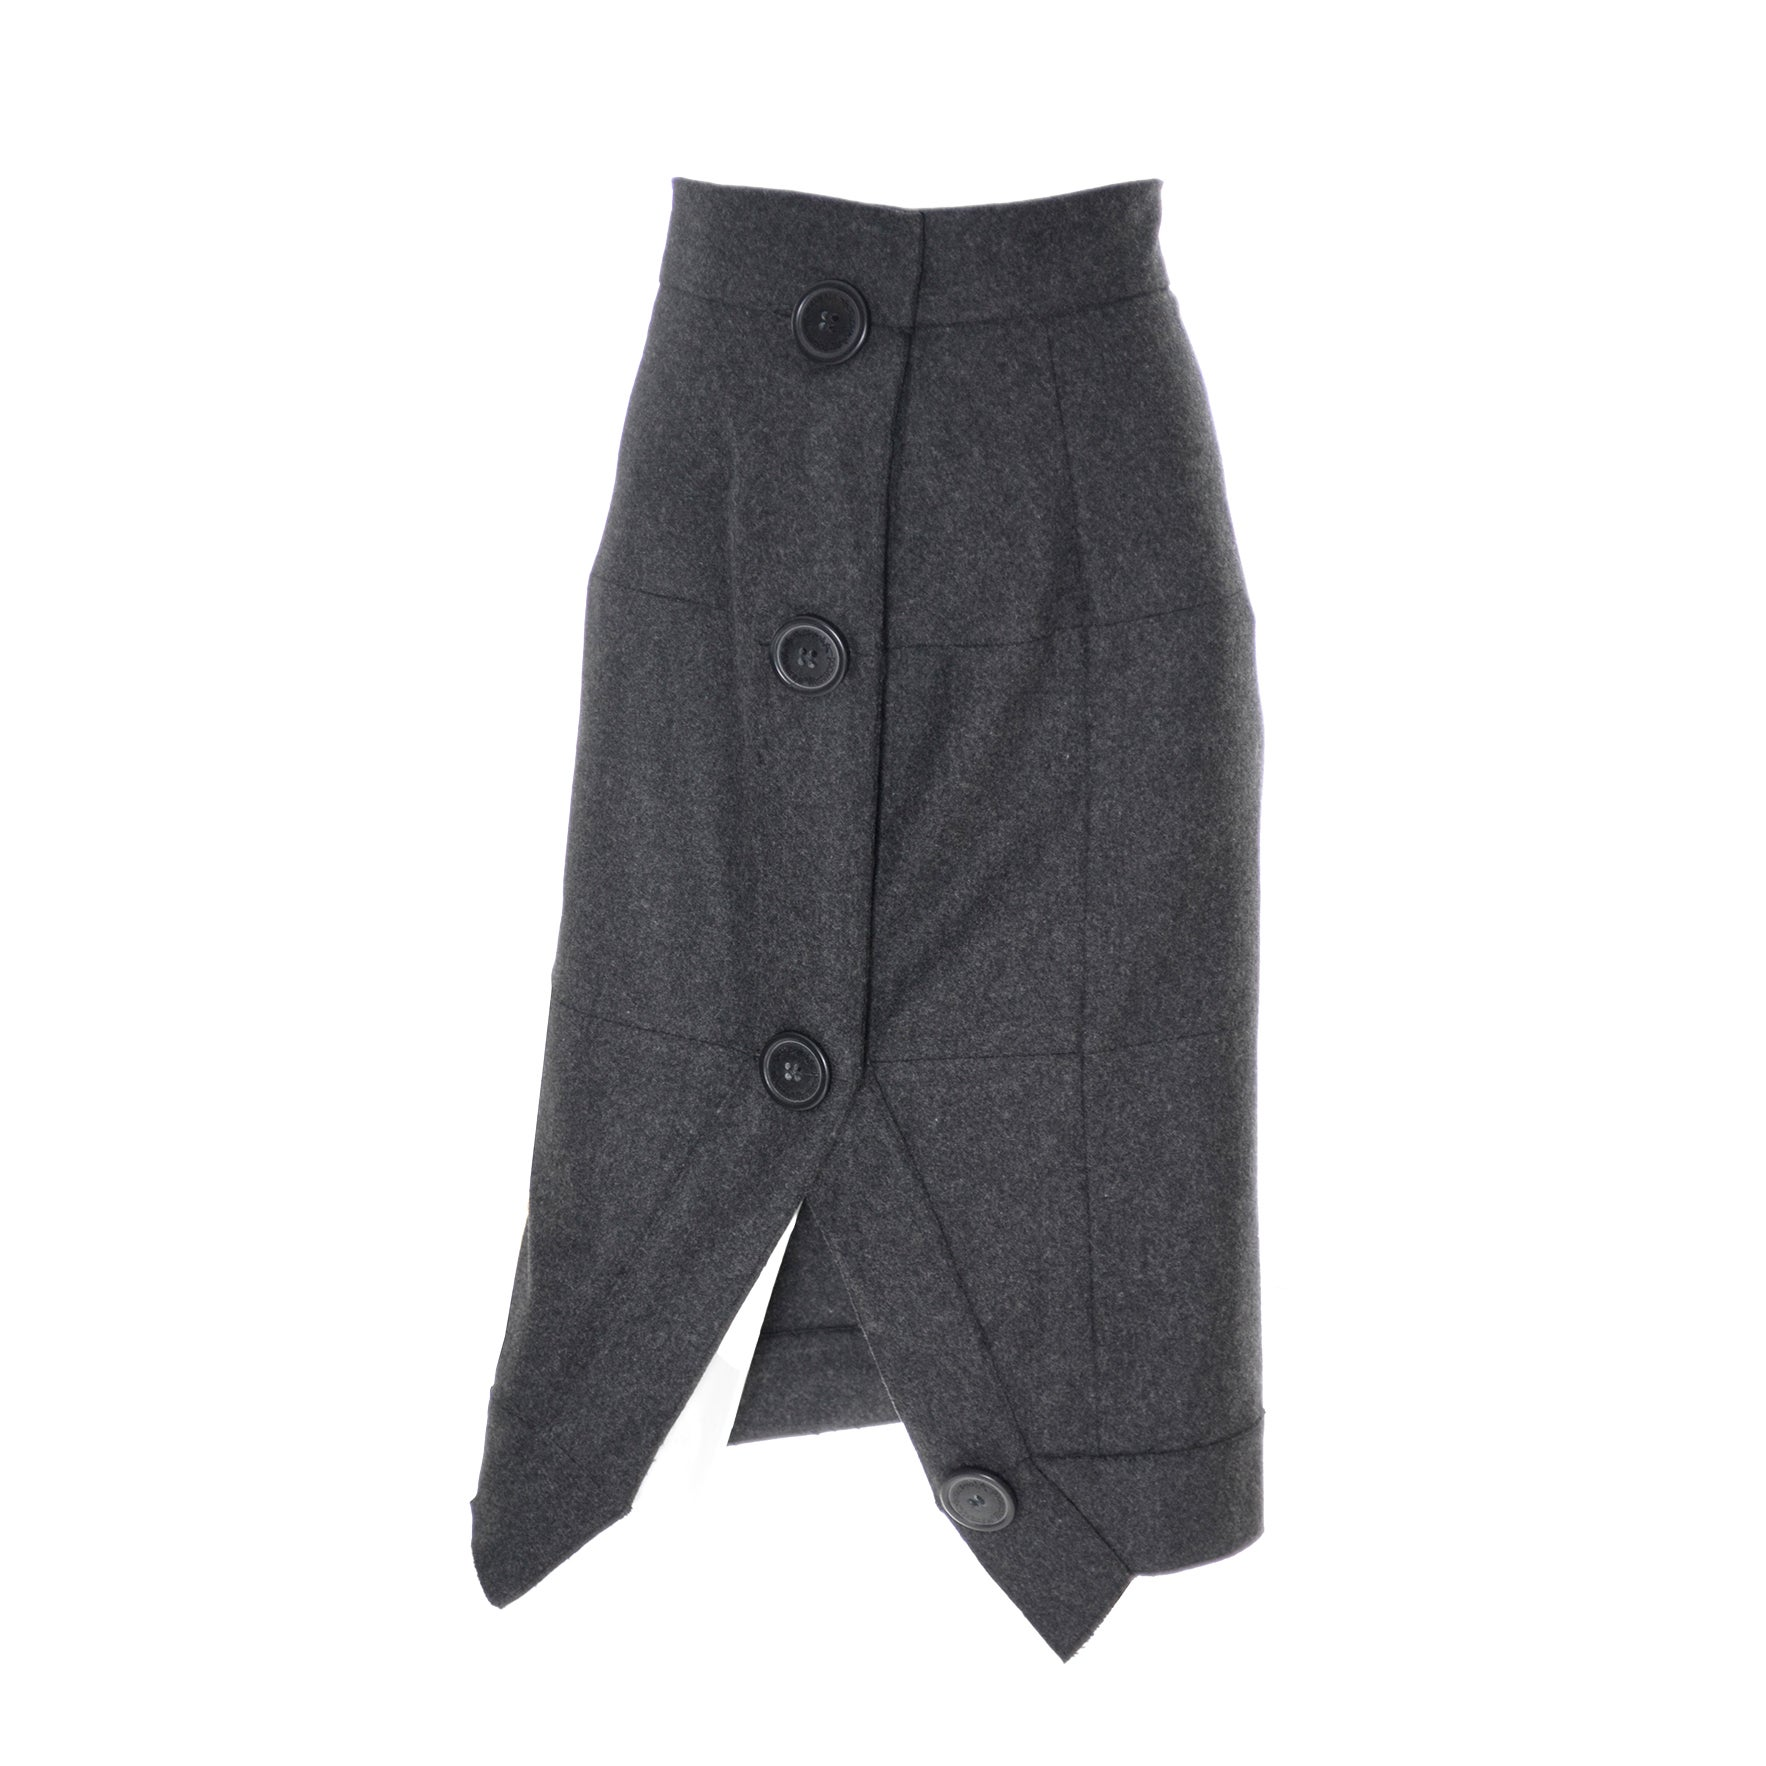 65f75f00a Vivienne Westwood Vintage Skirt Gray Wool Cashmere Avant Garde Anglomania  For Sale at 1stdibs